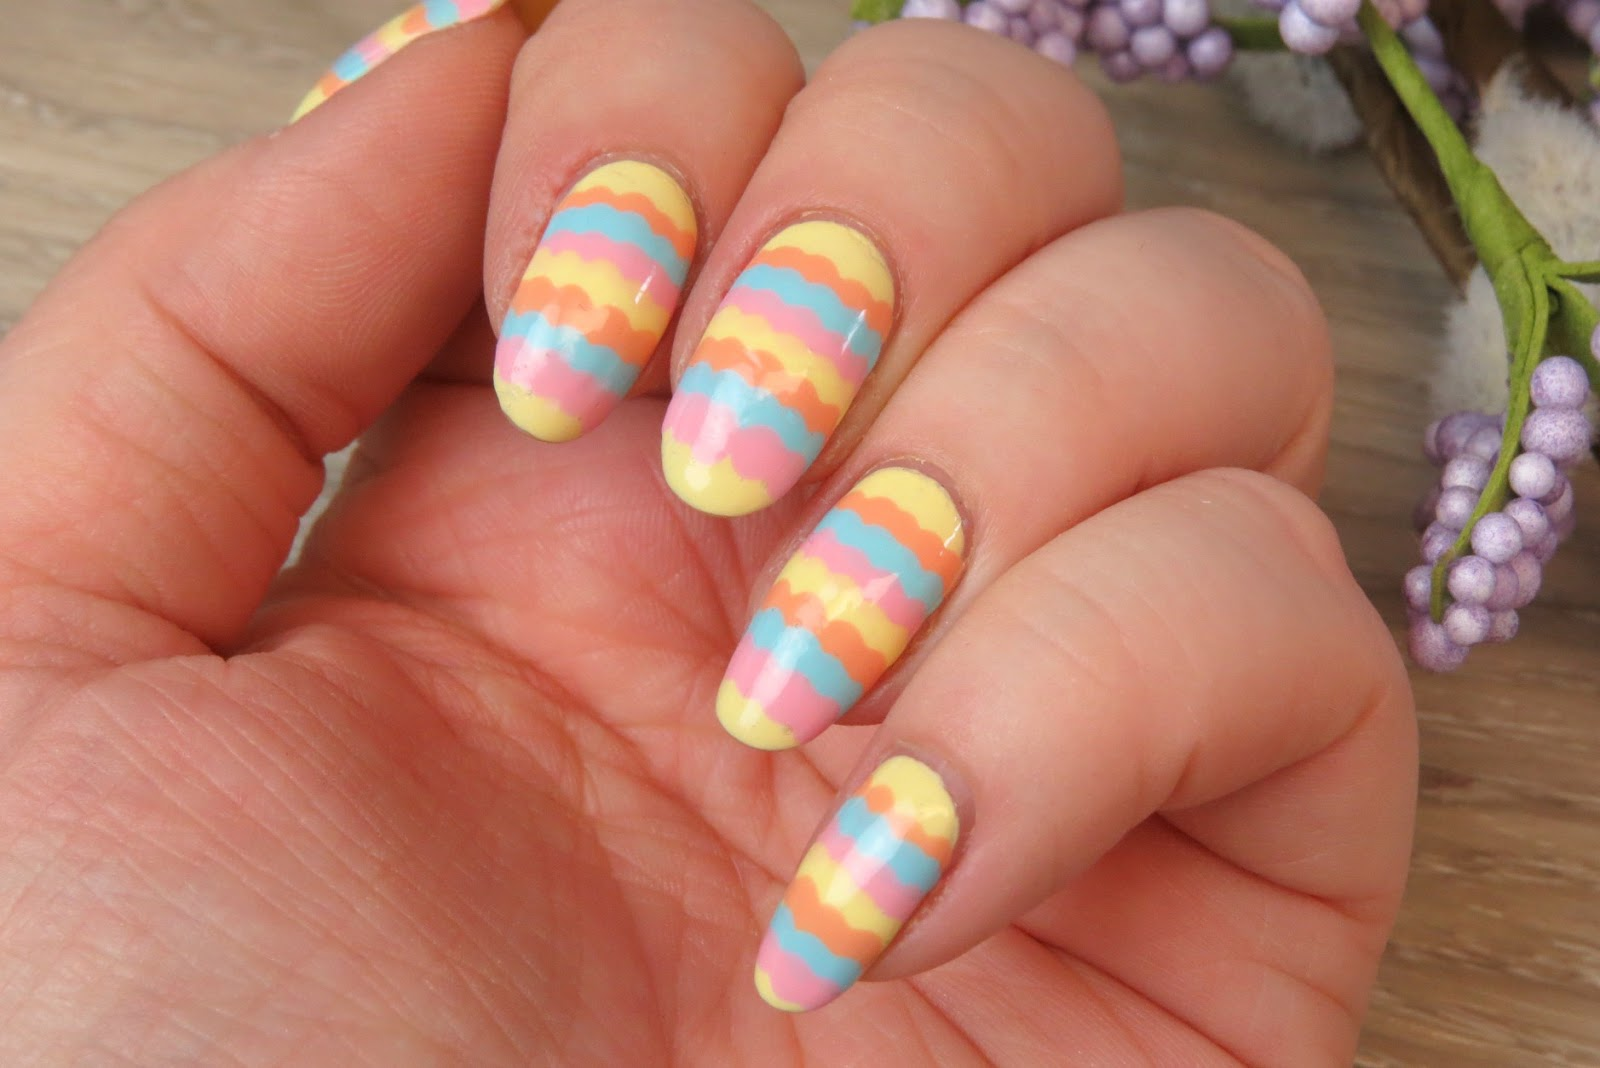 Nail art scalloped stripes kaitlyn elisabeth beauty scalloped stripes nail art design nail art using dotting tool opi retro summer 2016 collection prinsesfo Gallery